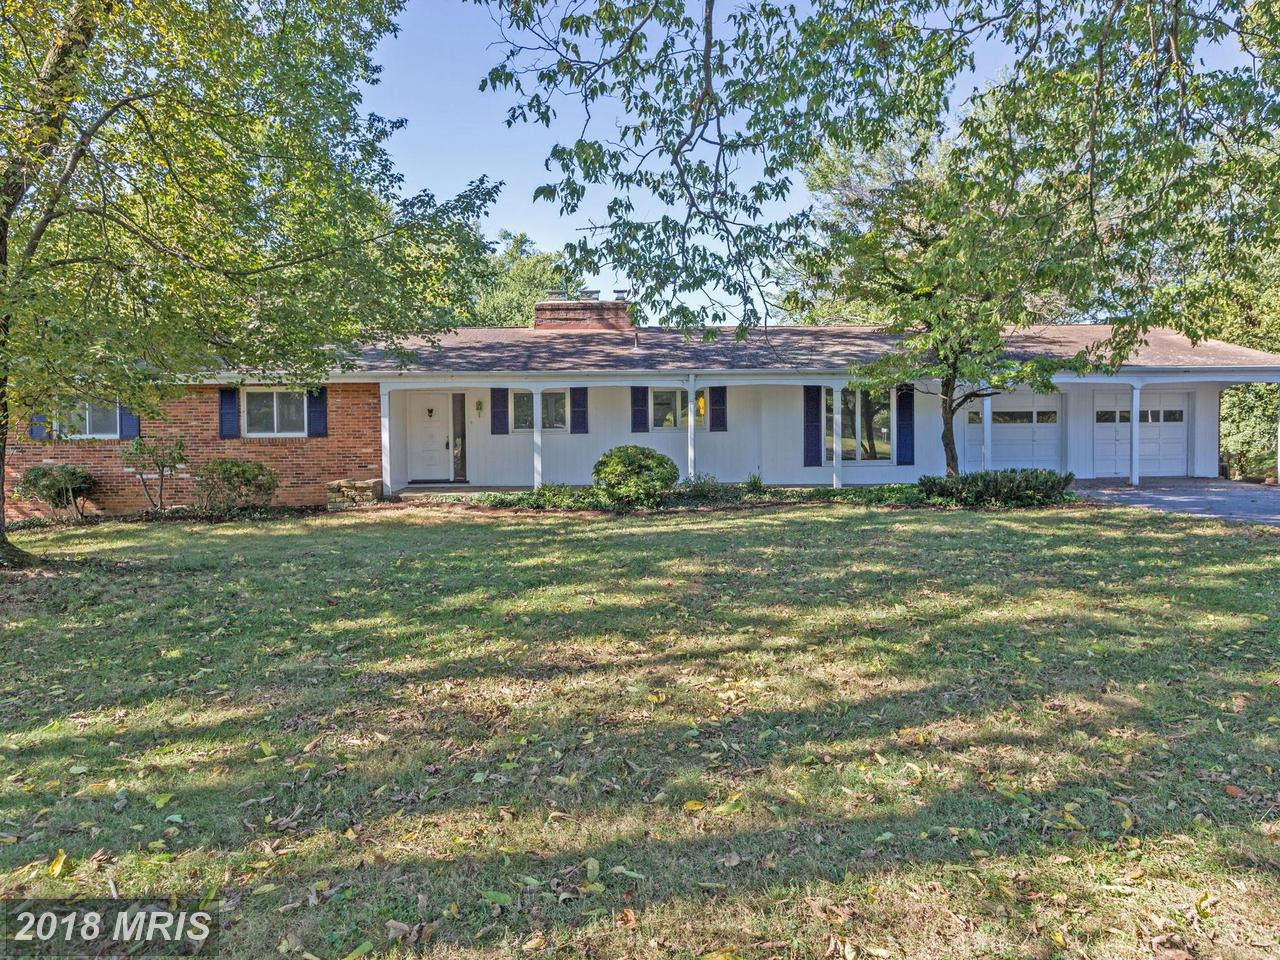 Single Family Home for Sale at Rancher, Detached - POTOMAC, MD 10700 RIVER RD Potomac, Maryland,20854 United States